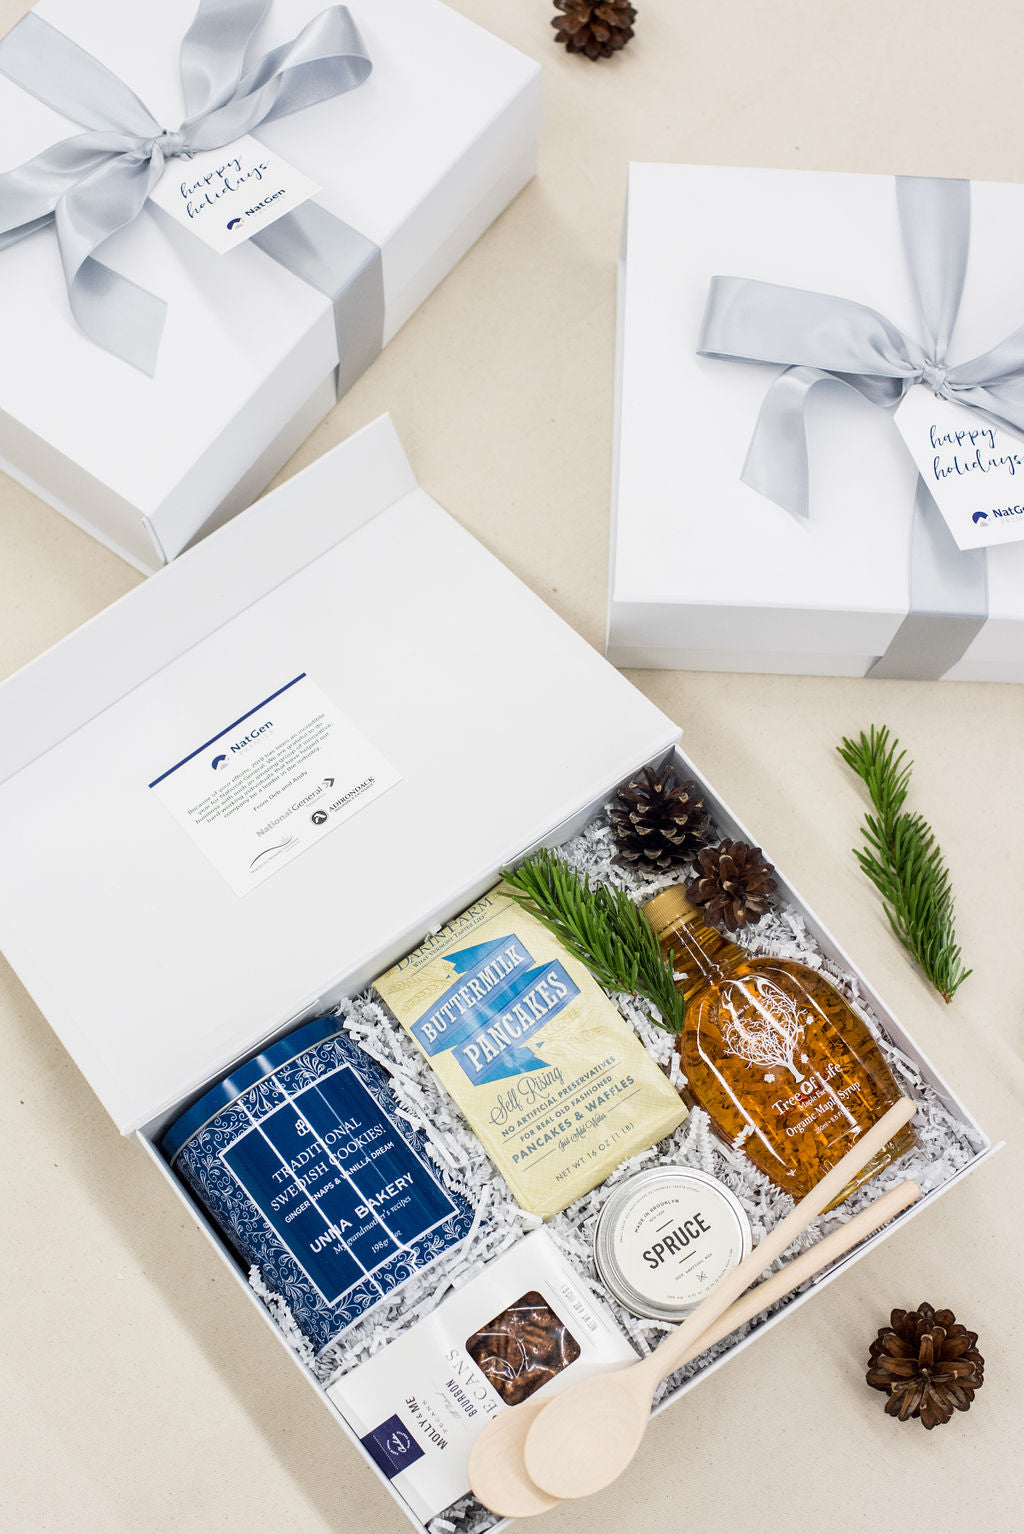 Gender neutral client holiday gifts